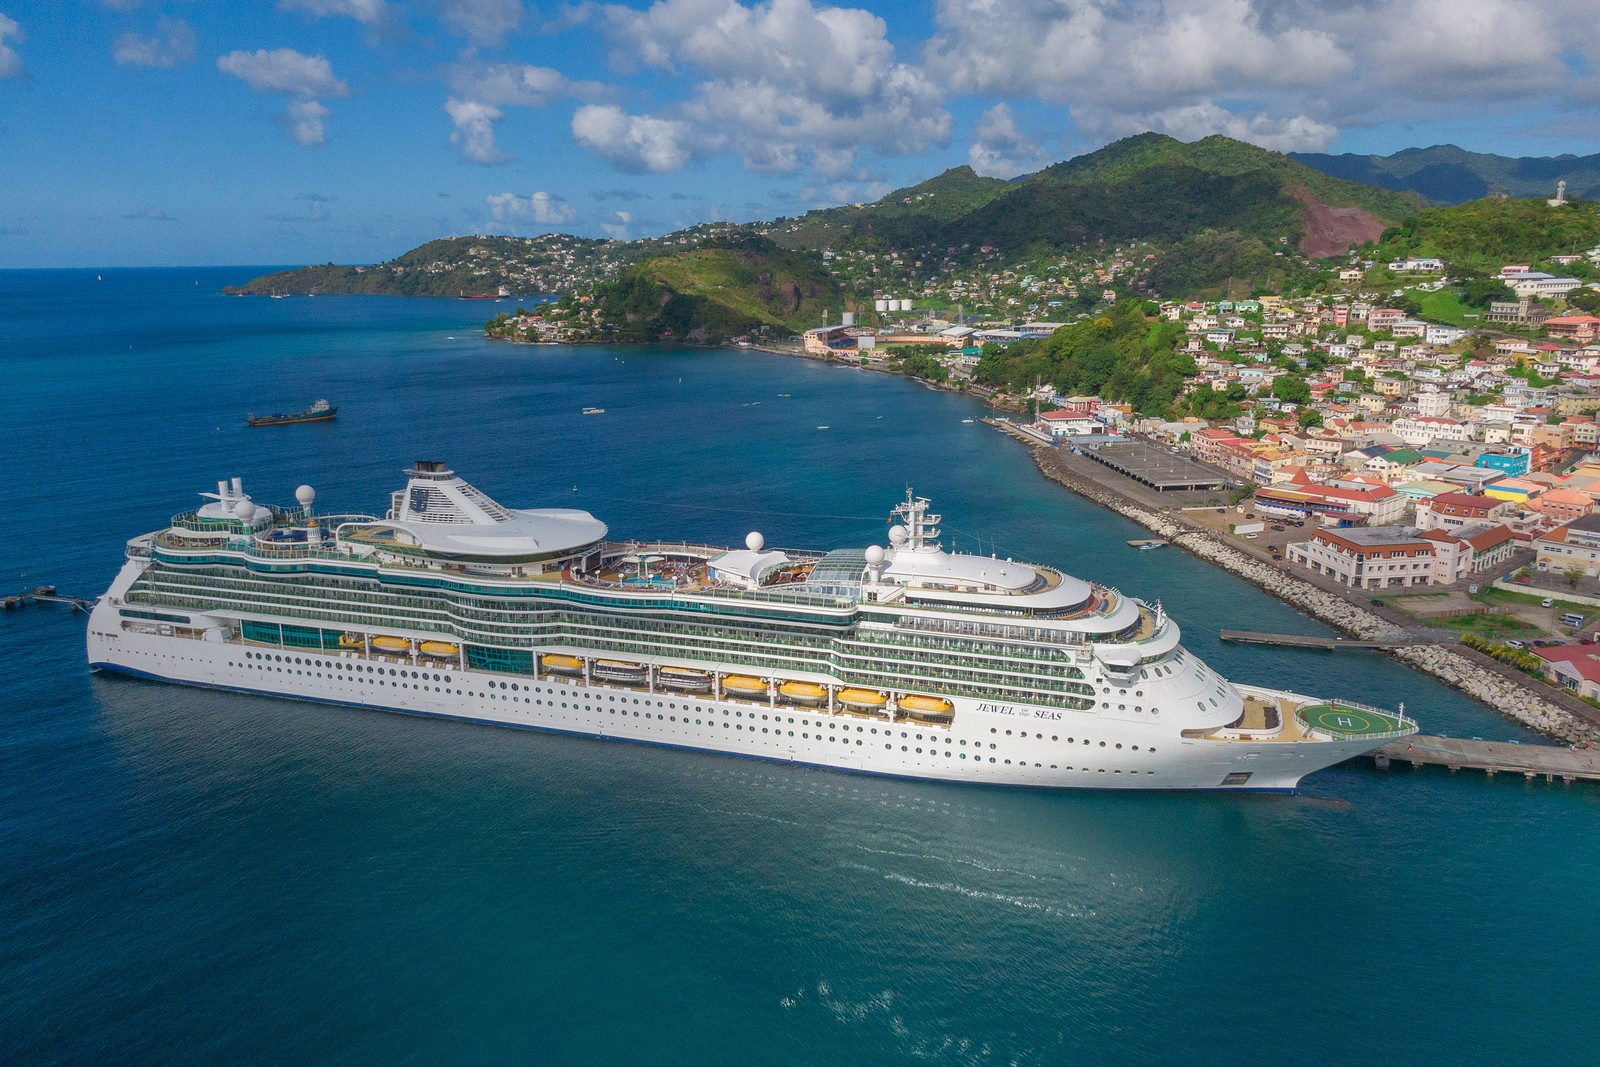 Cruise industry met with CDC this week about cruises restarting this summer